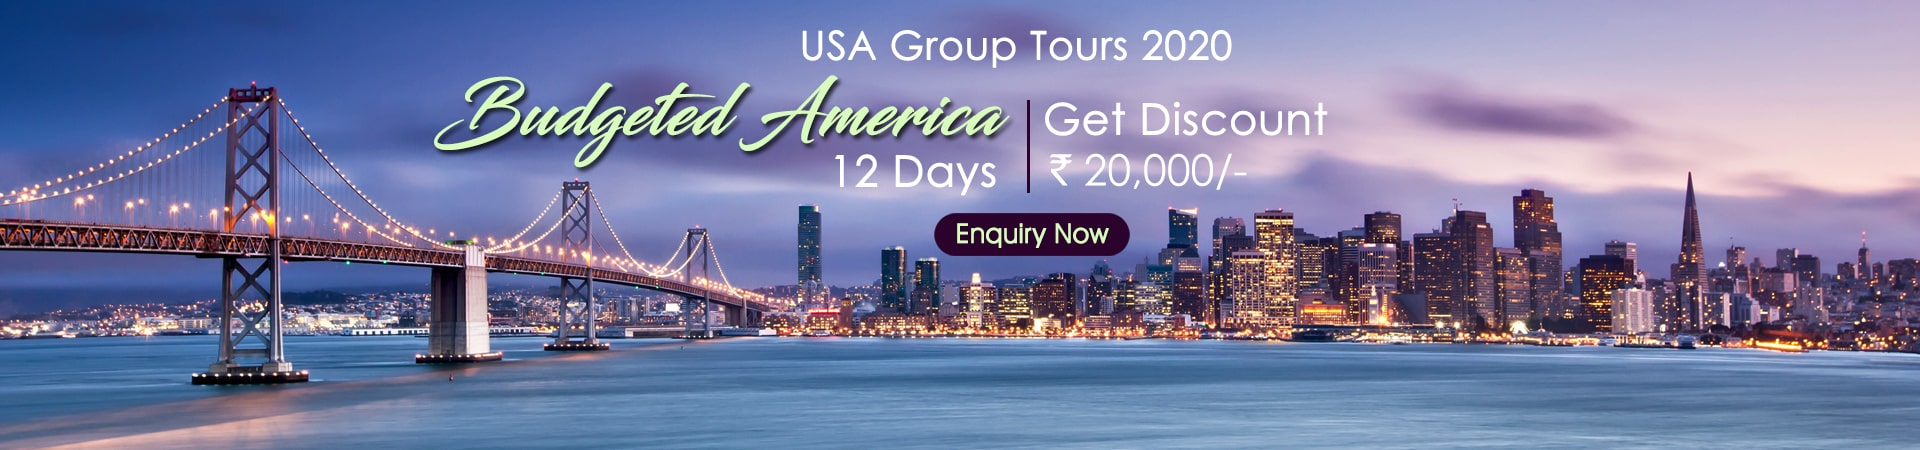 USA Holiday Packages